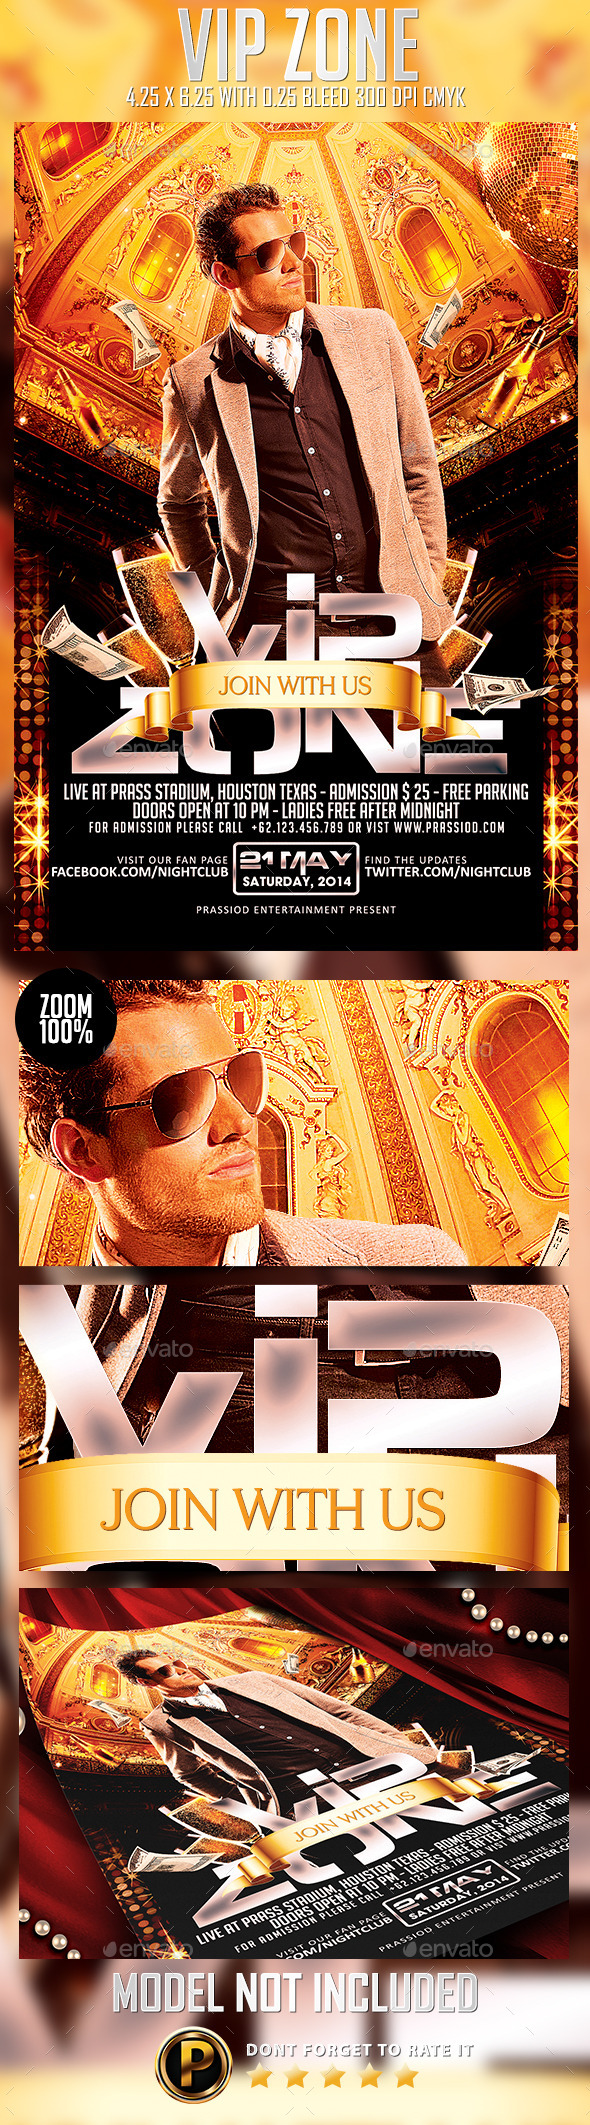 Vip Zone Flyer Template - Clubs & Parties Events